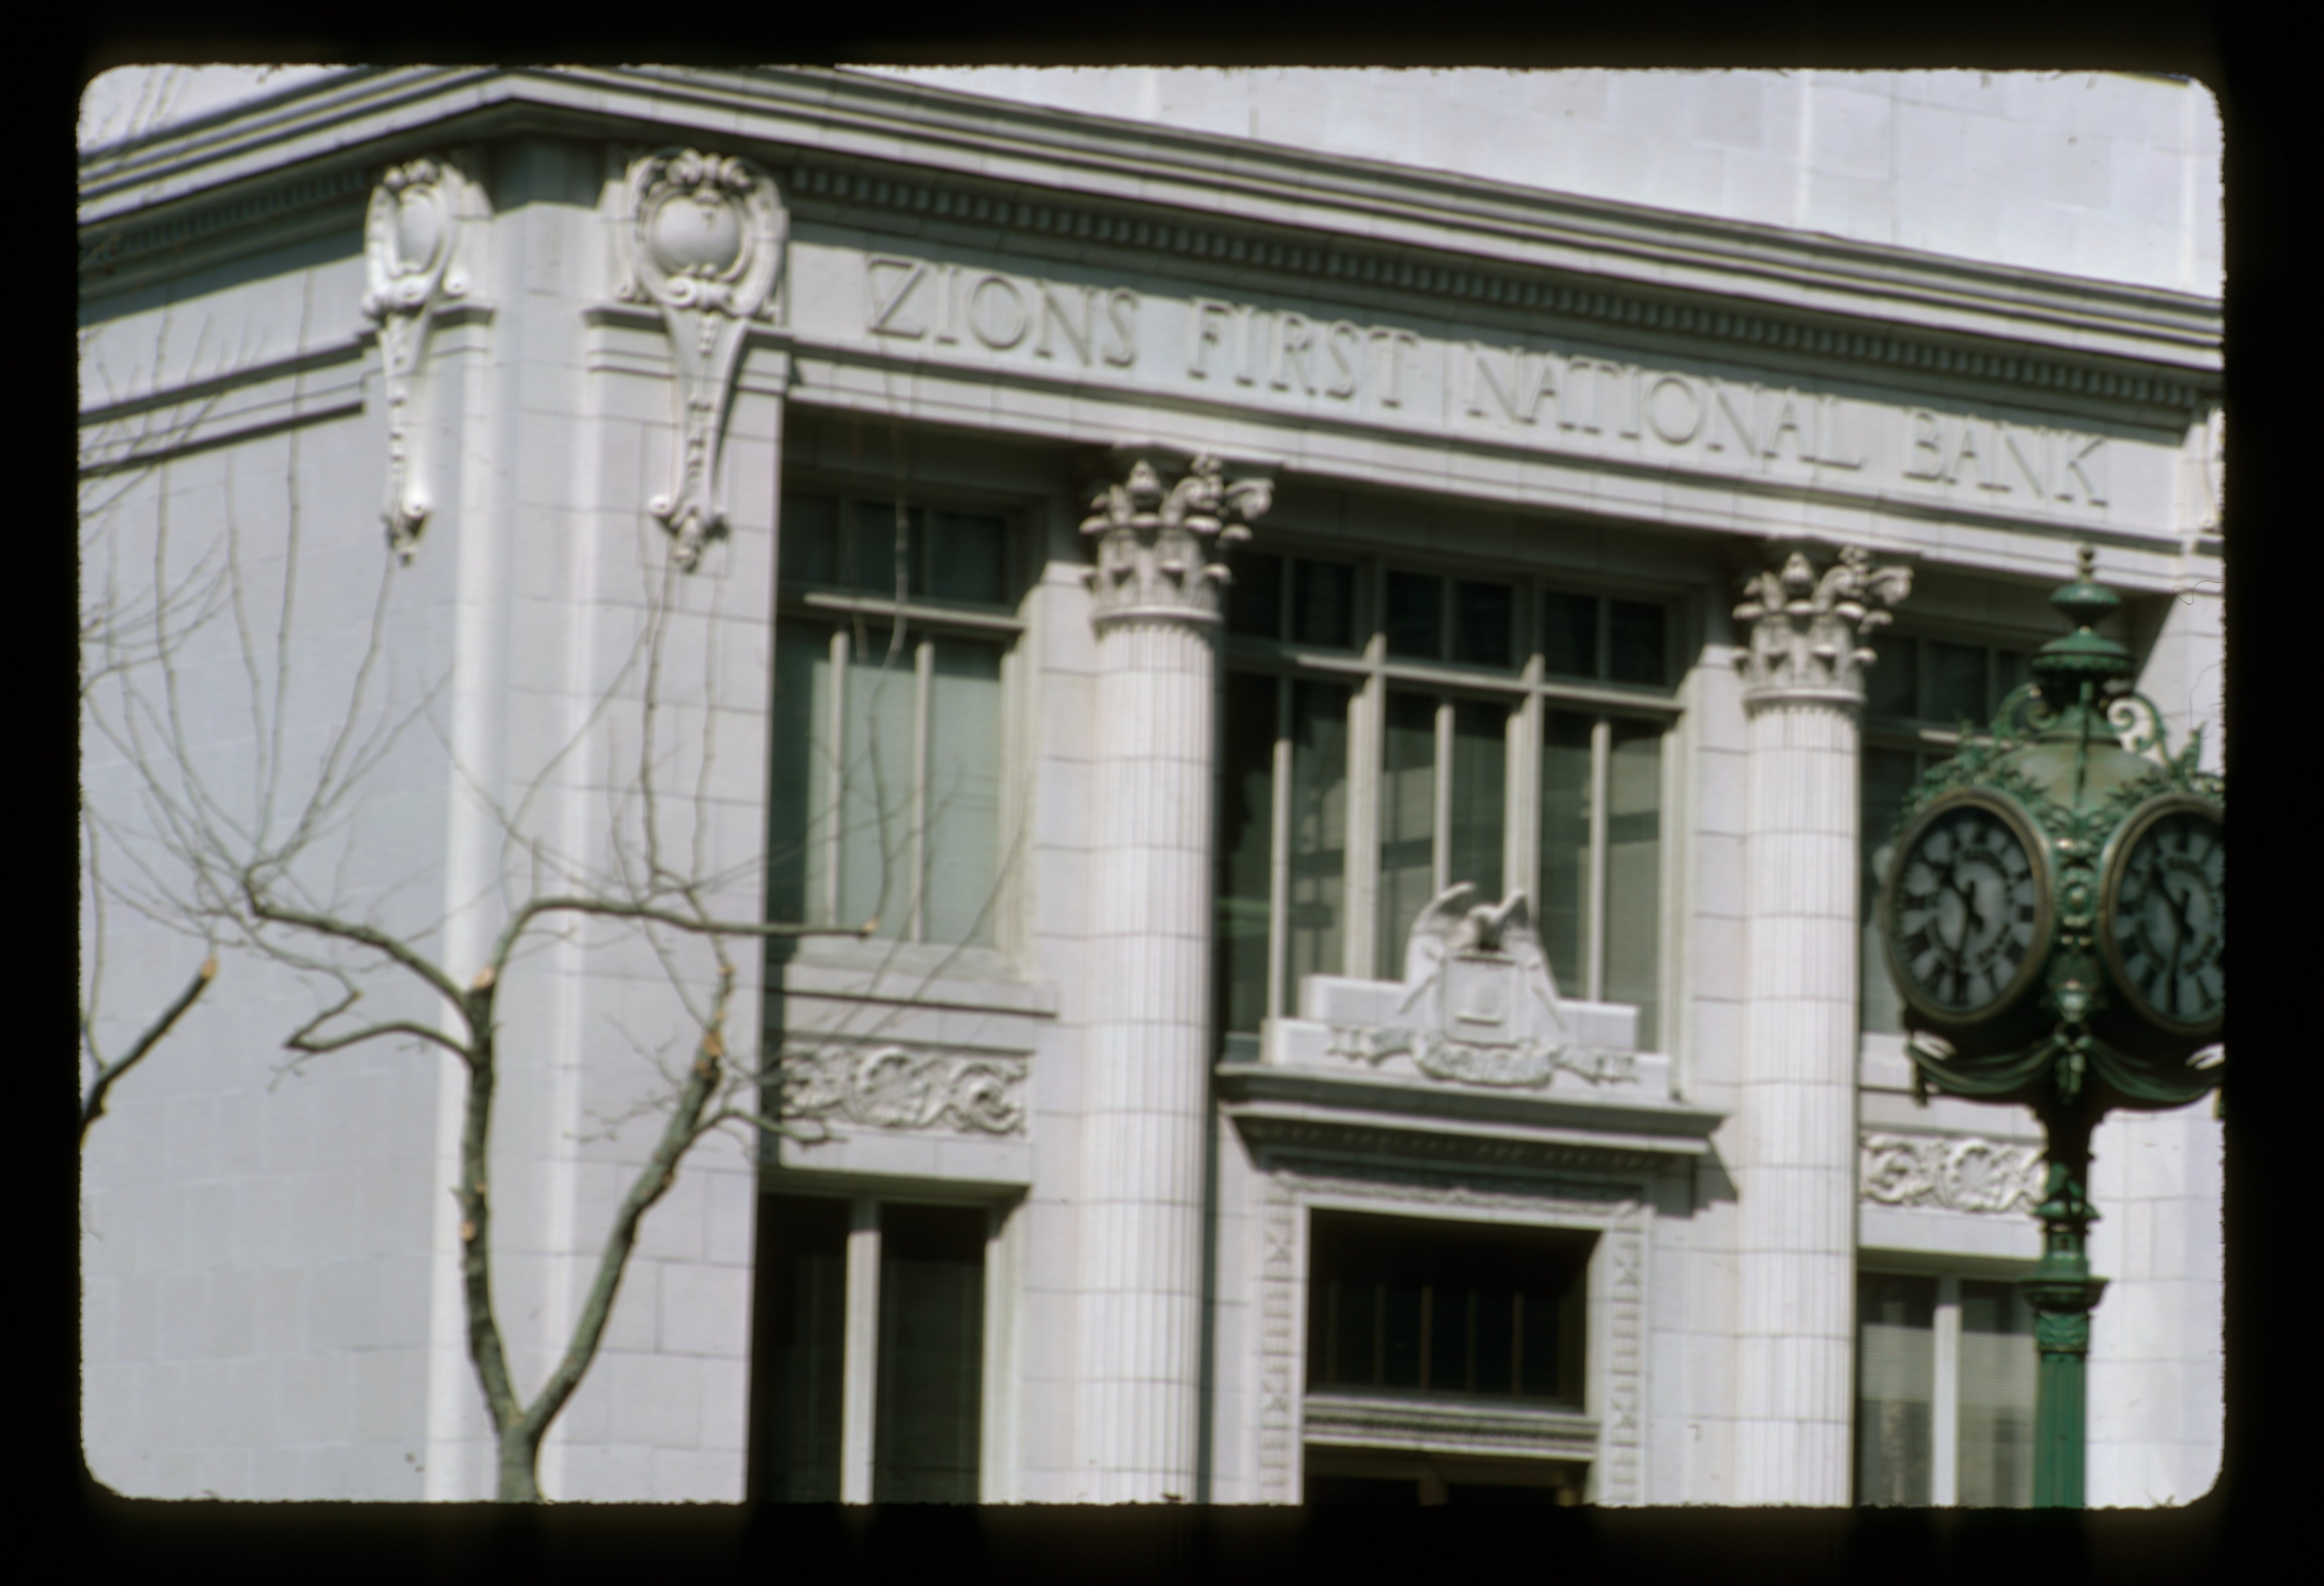 Zion First National Bank   Department of Heritage and Arts